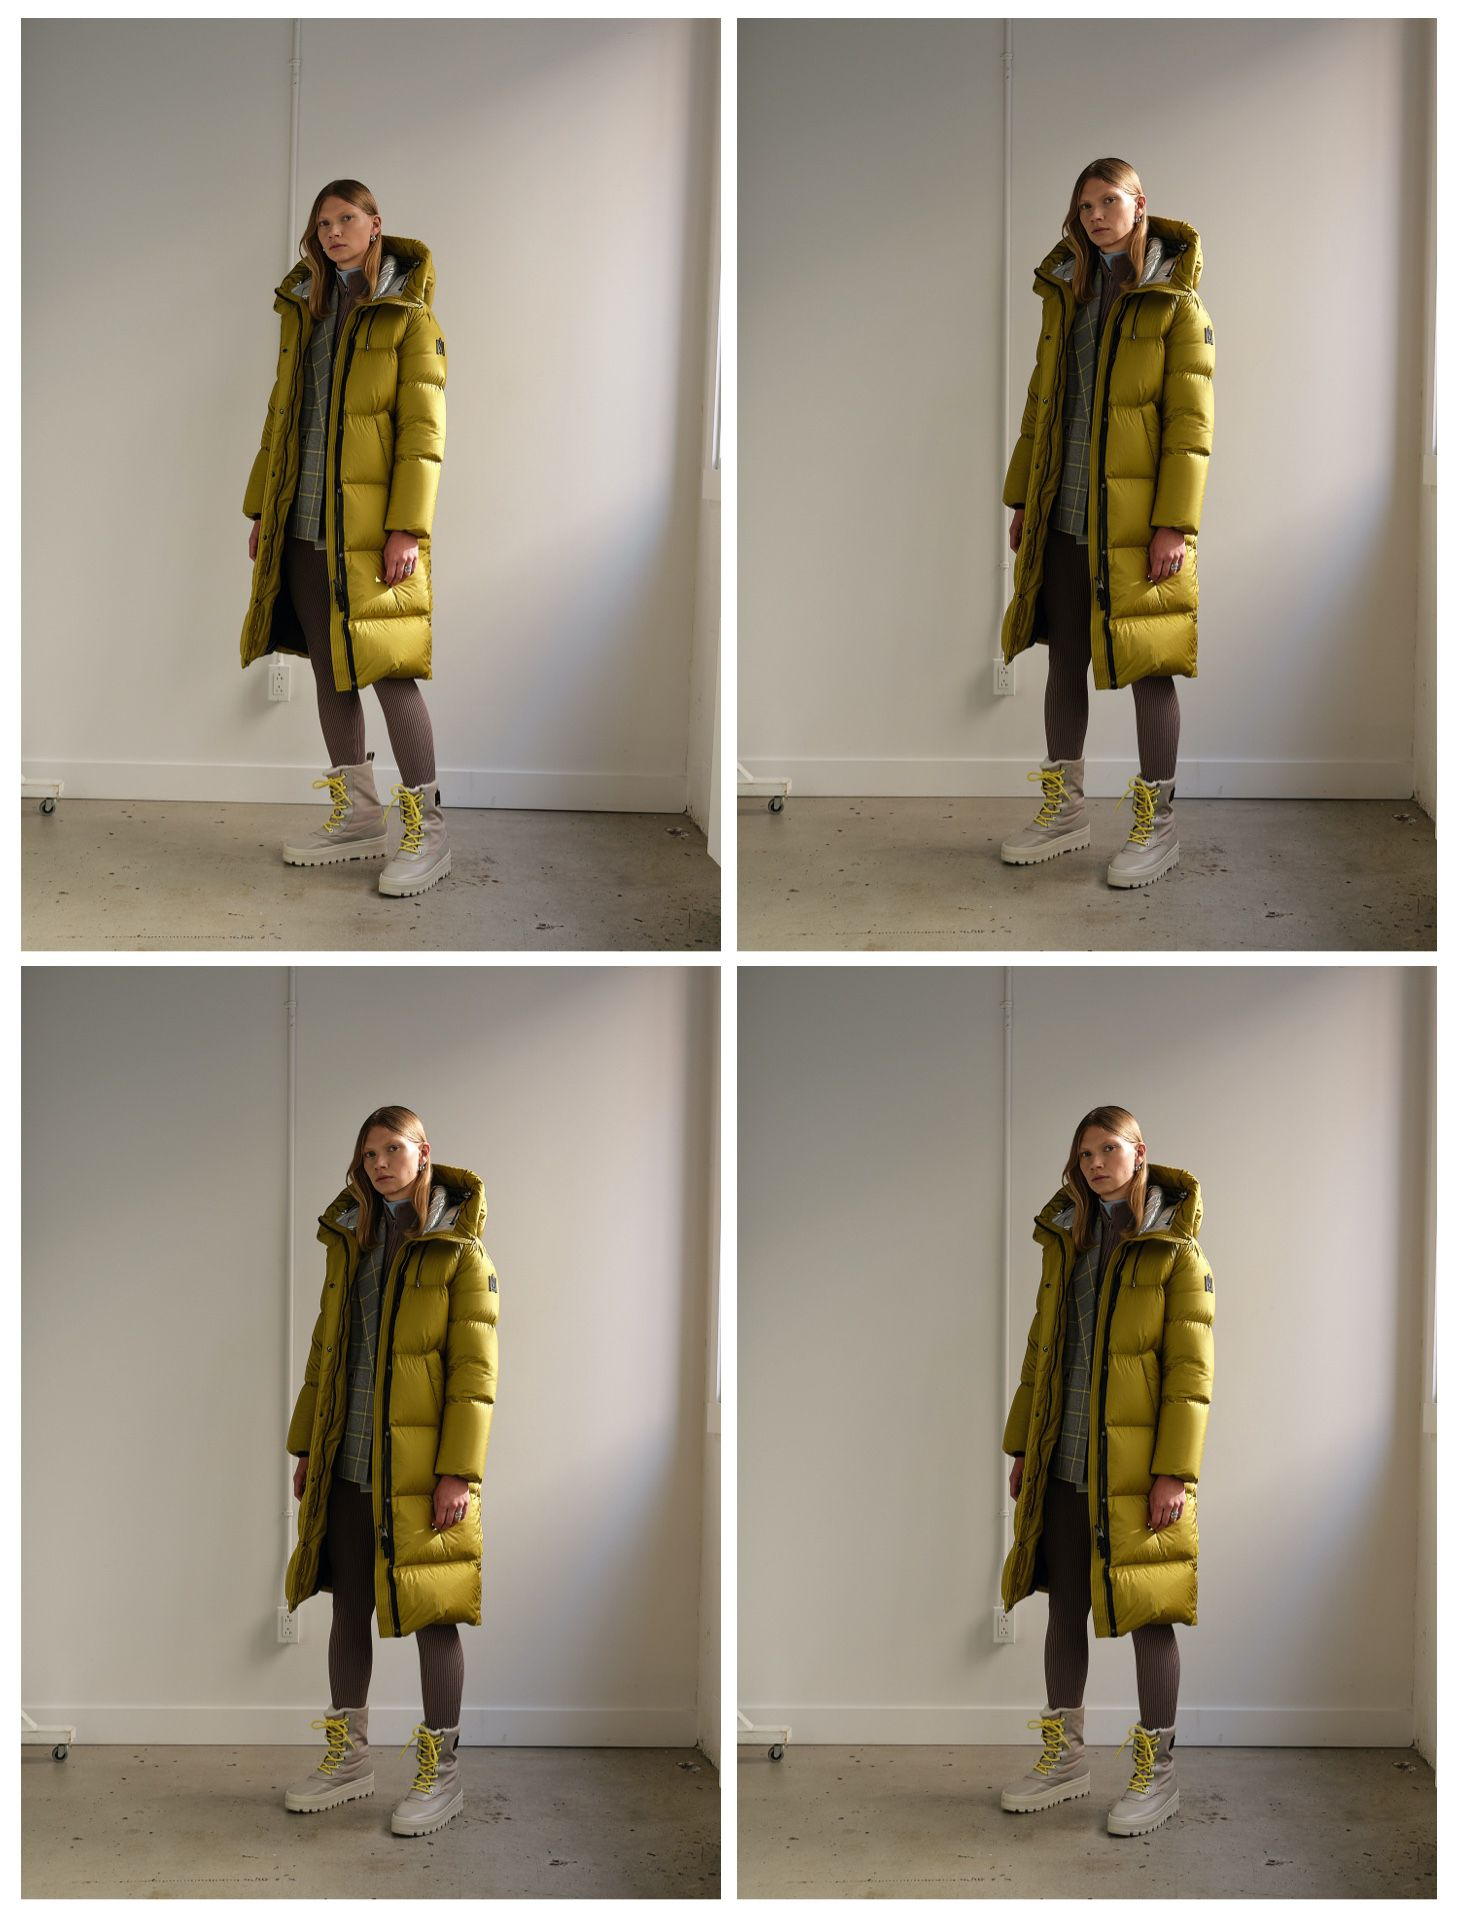 photography in studio for Mackage fall collection 2020 by Maxyme G delisle